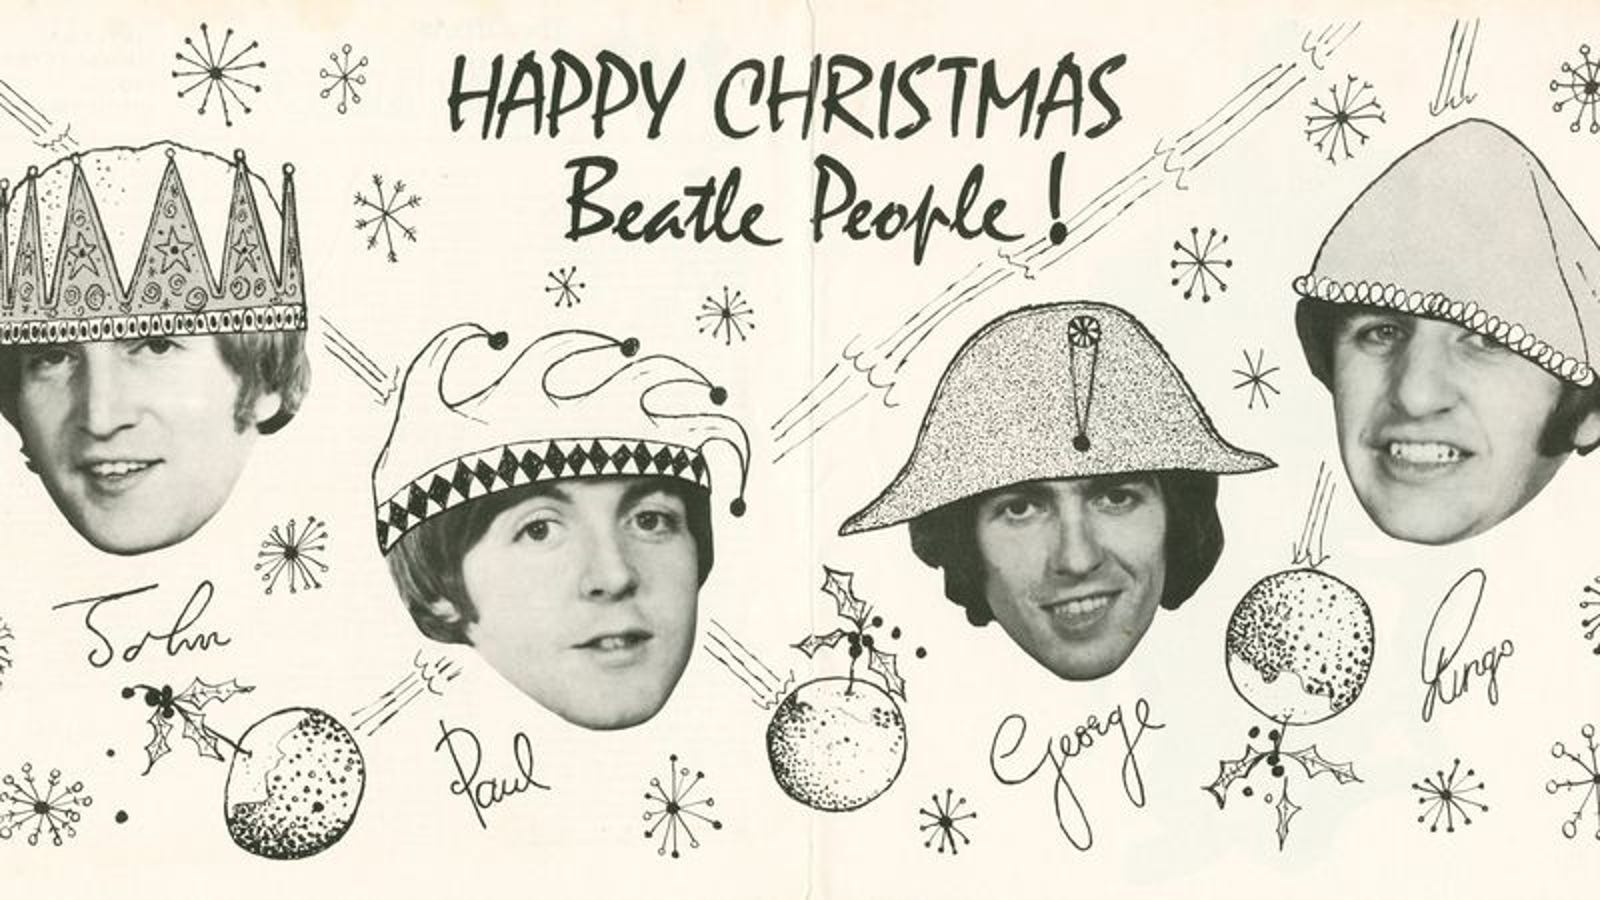 The Beatles\' Christmas albums are wacky and whimsical, until they\'re not